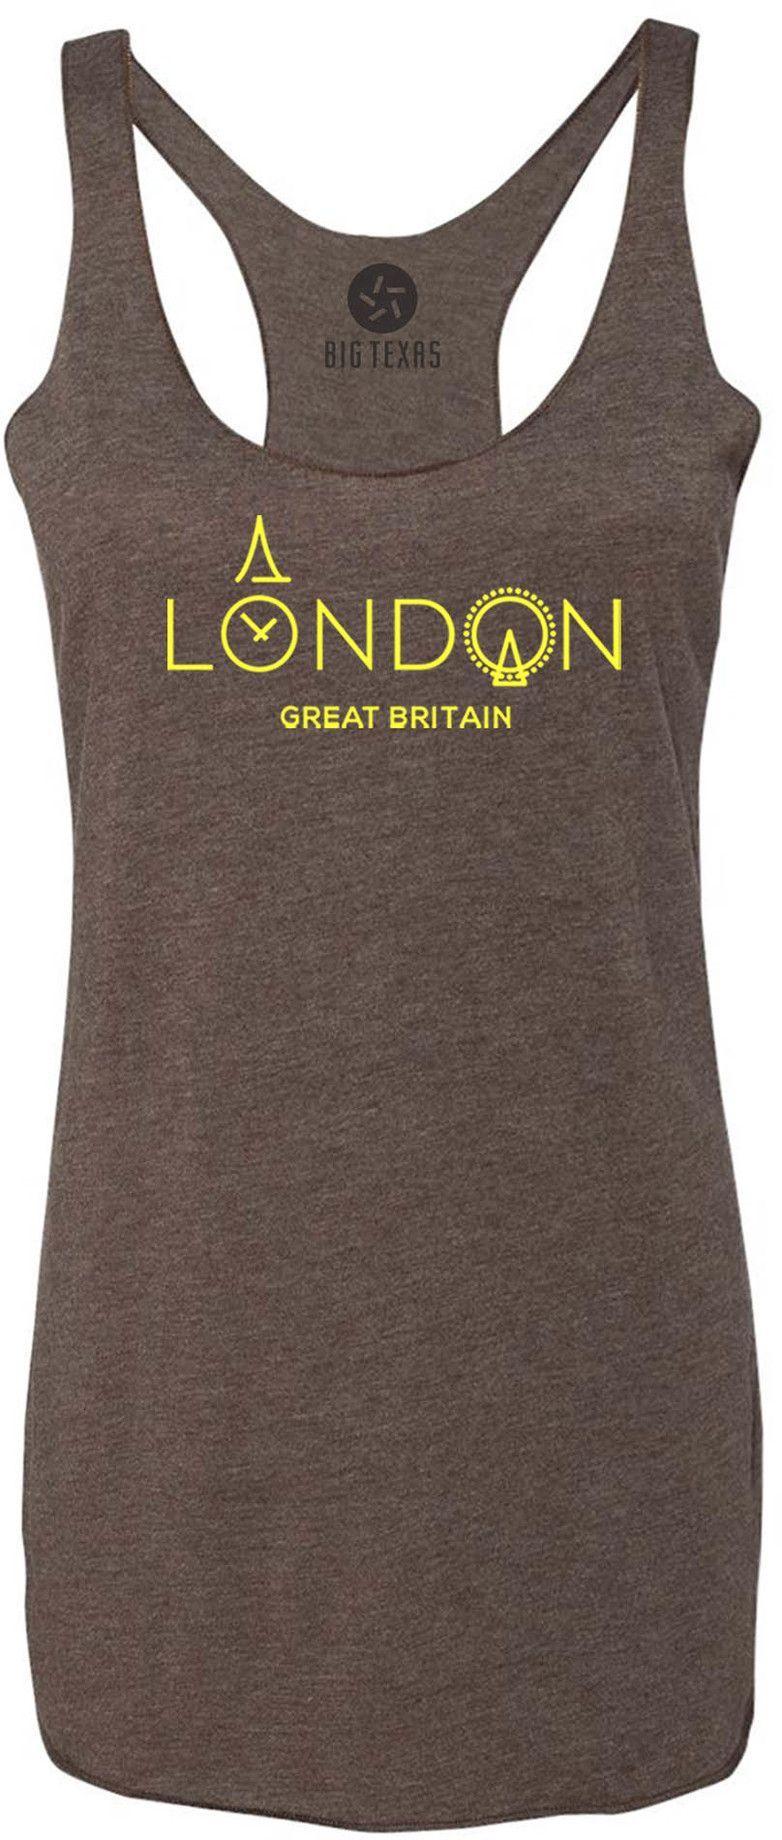 City of London (Yellow) Tri-Blend Racerback Tank-Top